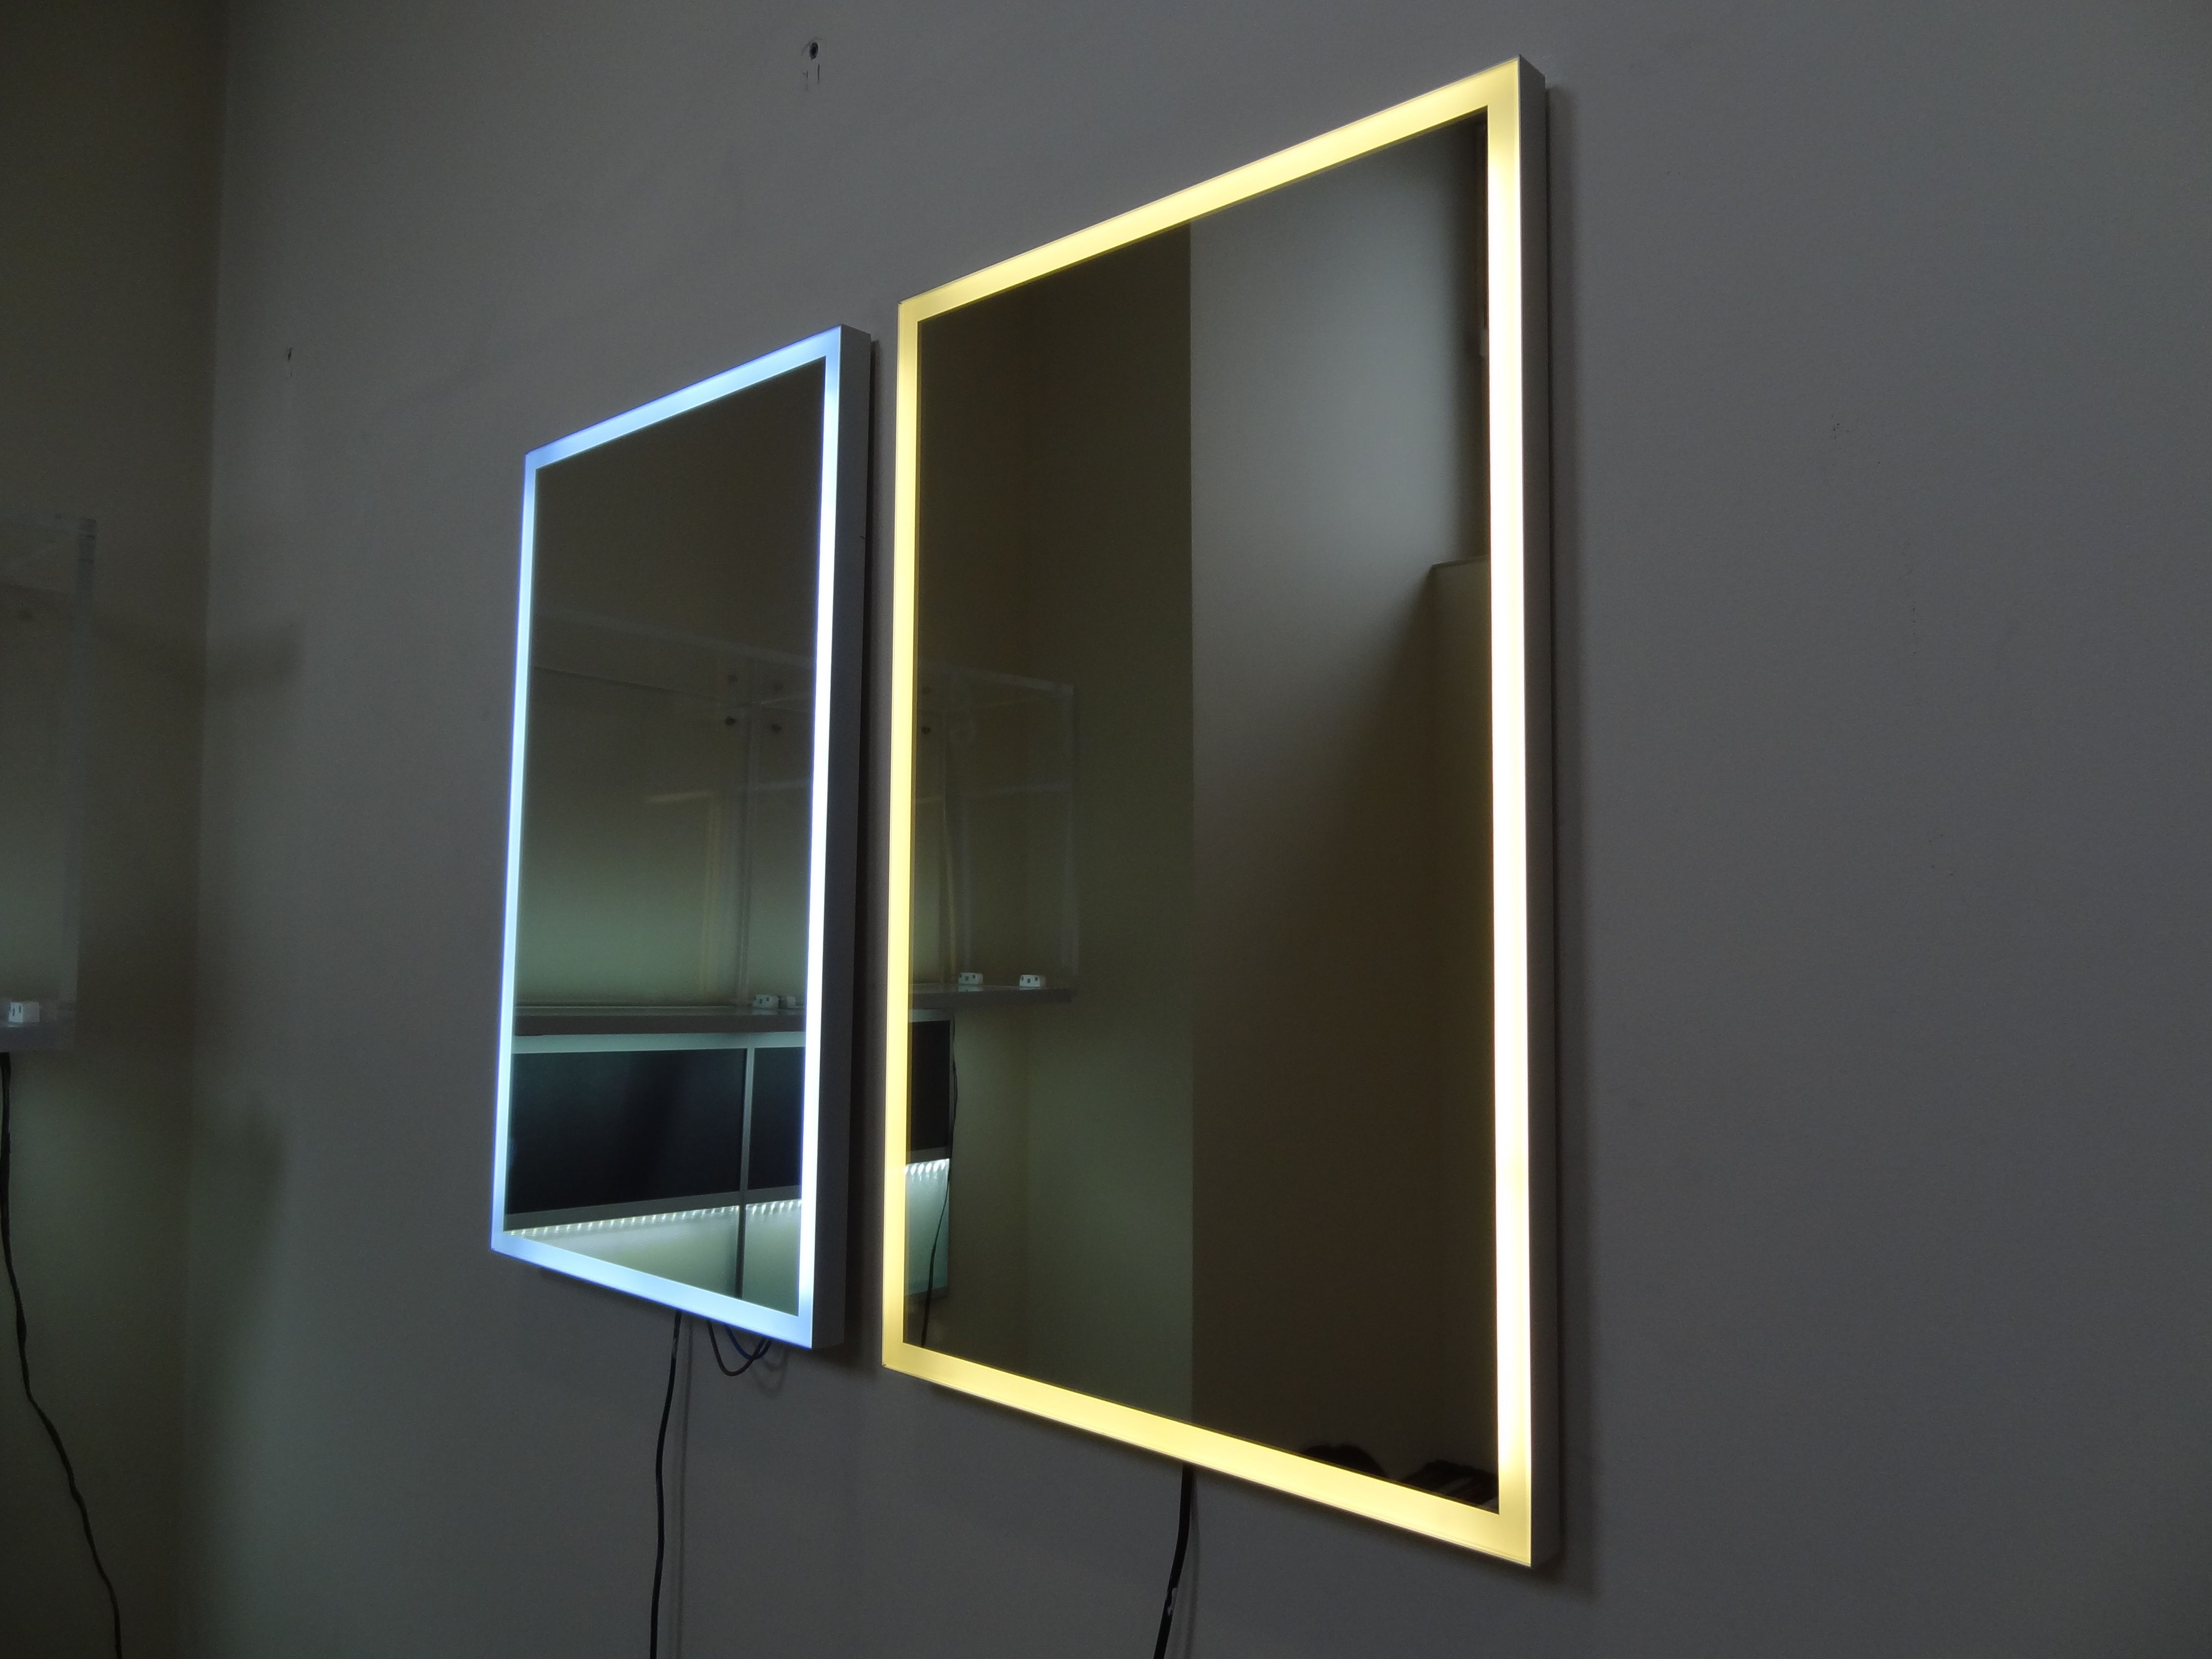 17 Best images about LED Mirrors on Pinterest   Dressing room mirror   Lighted mirror and Mirror with shelf. 17 Best images about LED Mirrors on Pinterest   Dressing room